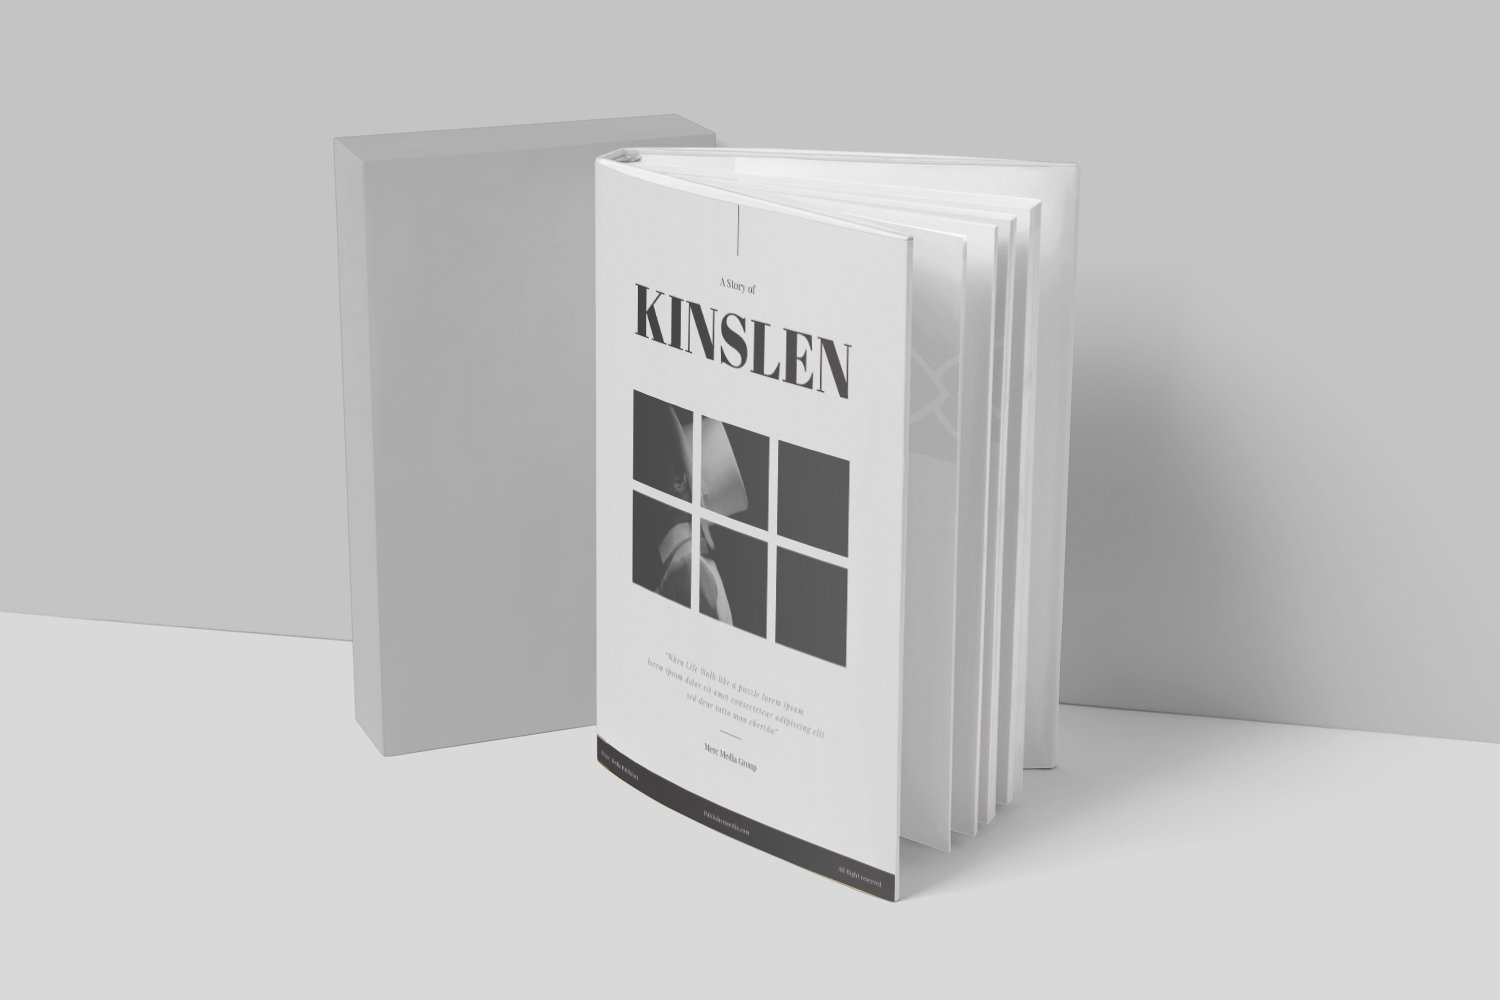 Kinslen Book Cover example image 4